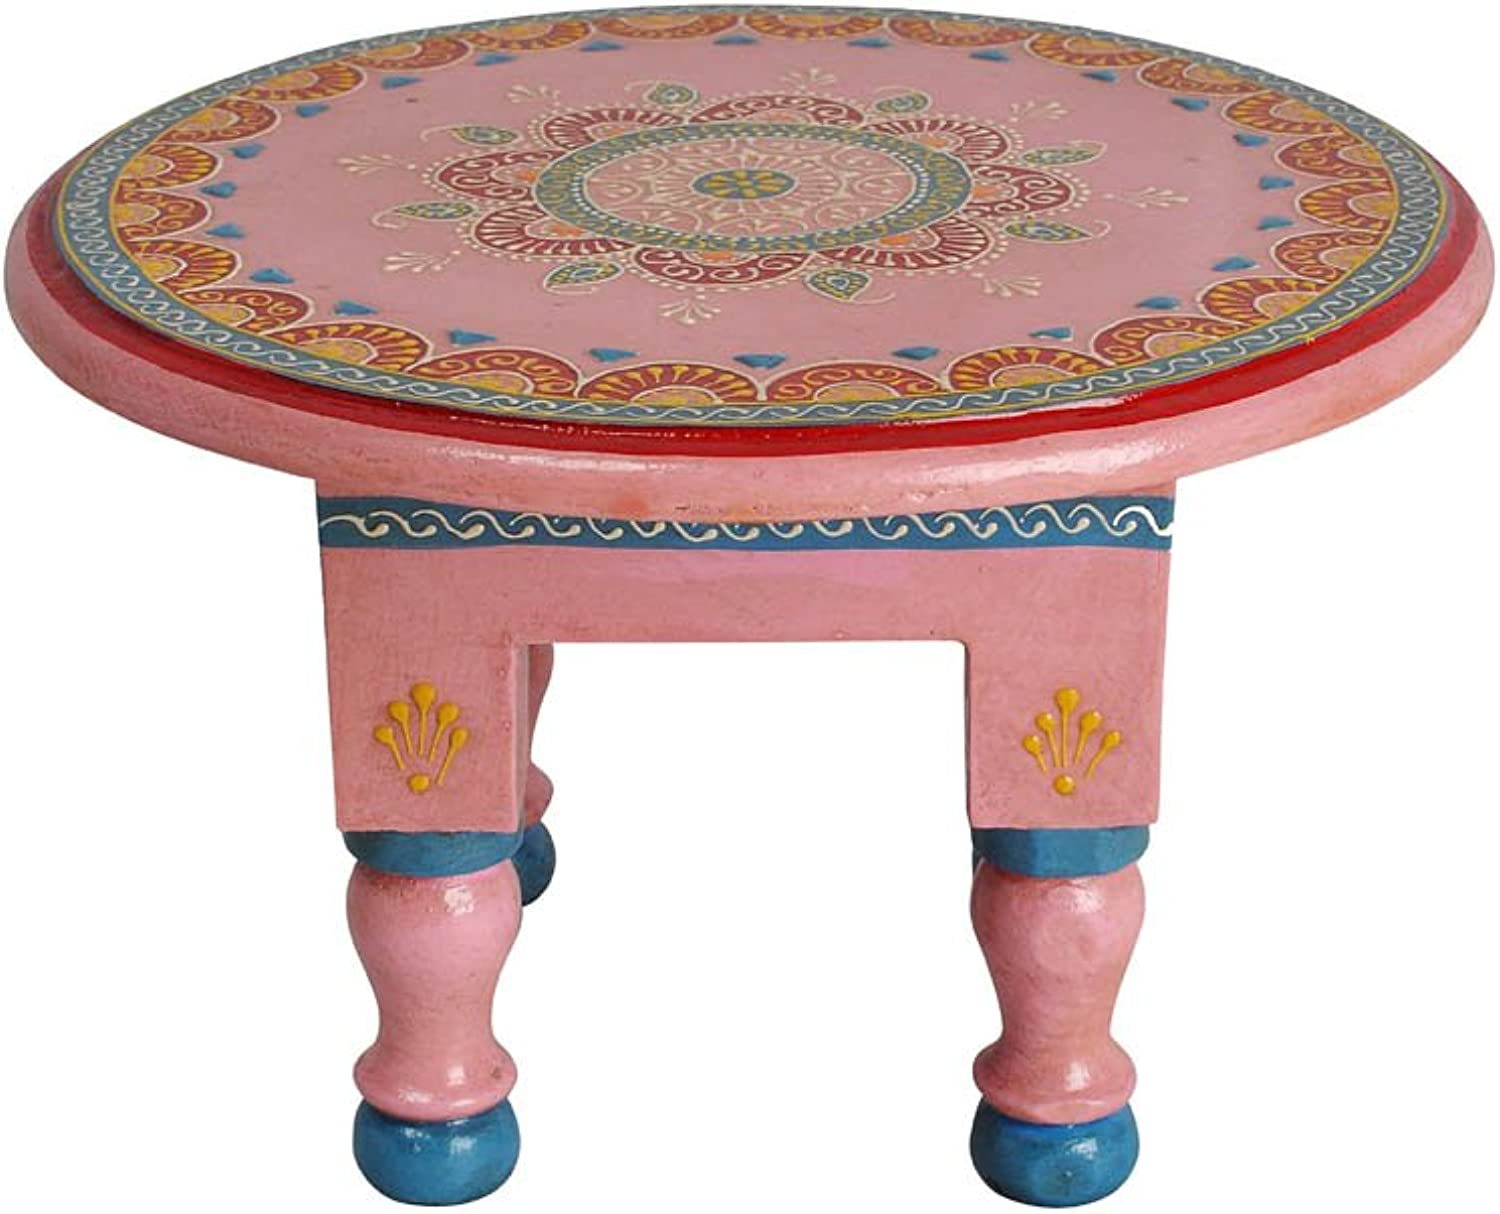 Lalhaveli Designer Pink Round Low Height Wooden Small Table 9 x 9 x 6 Inch